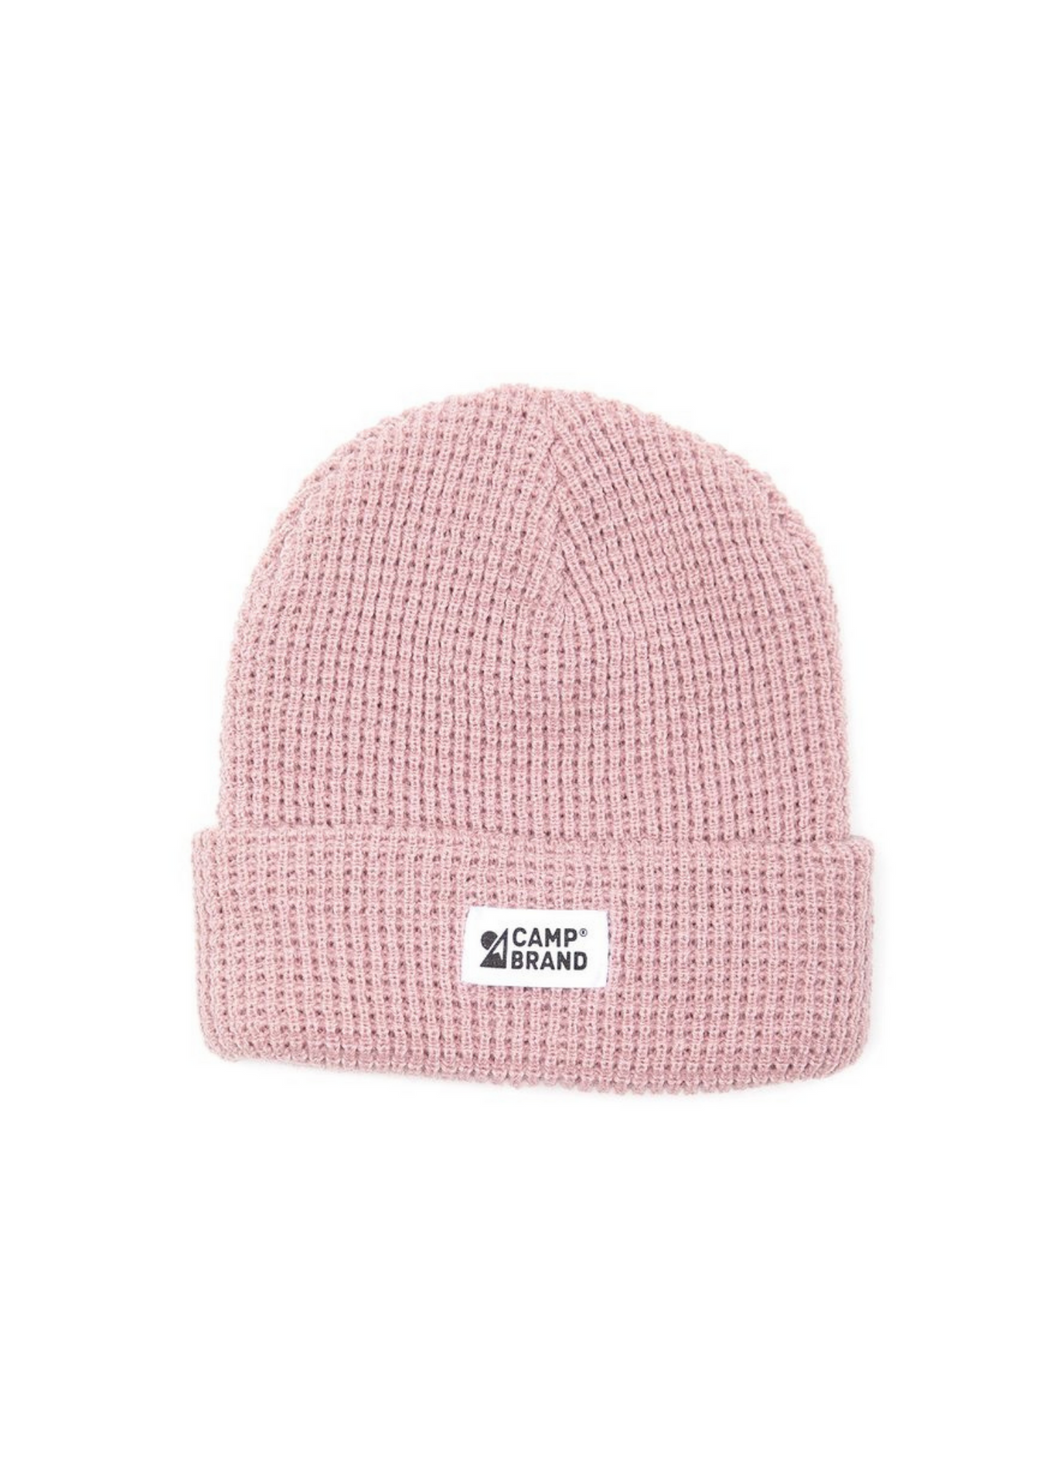 Camp Brand Goods Mountain Logo Waffle Toque - Pale Rose